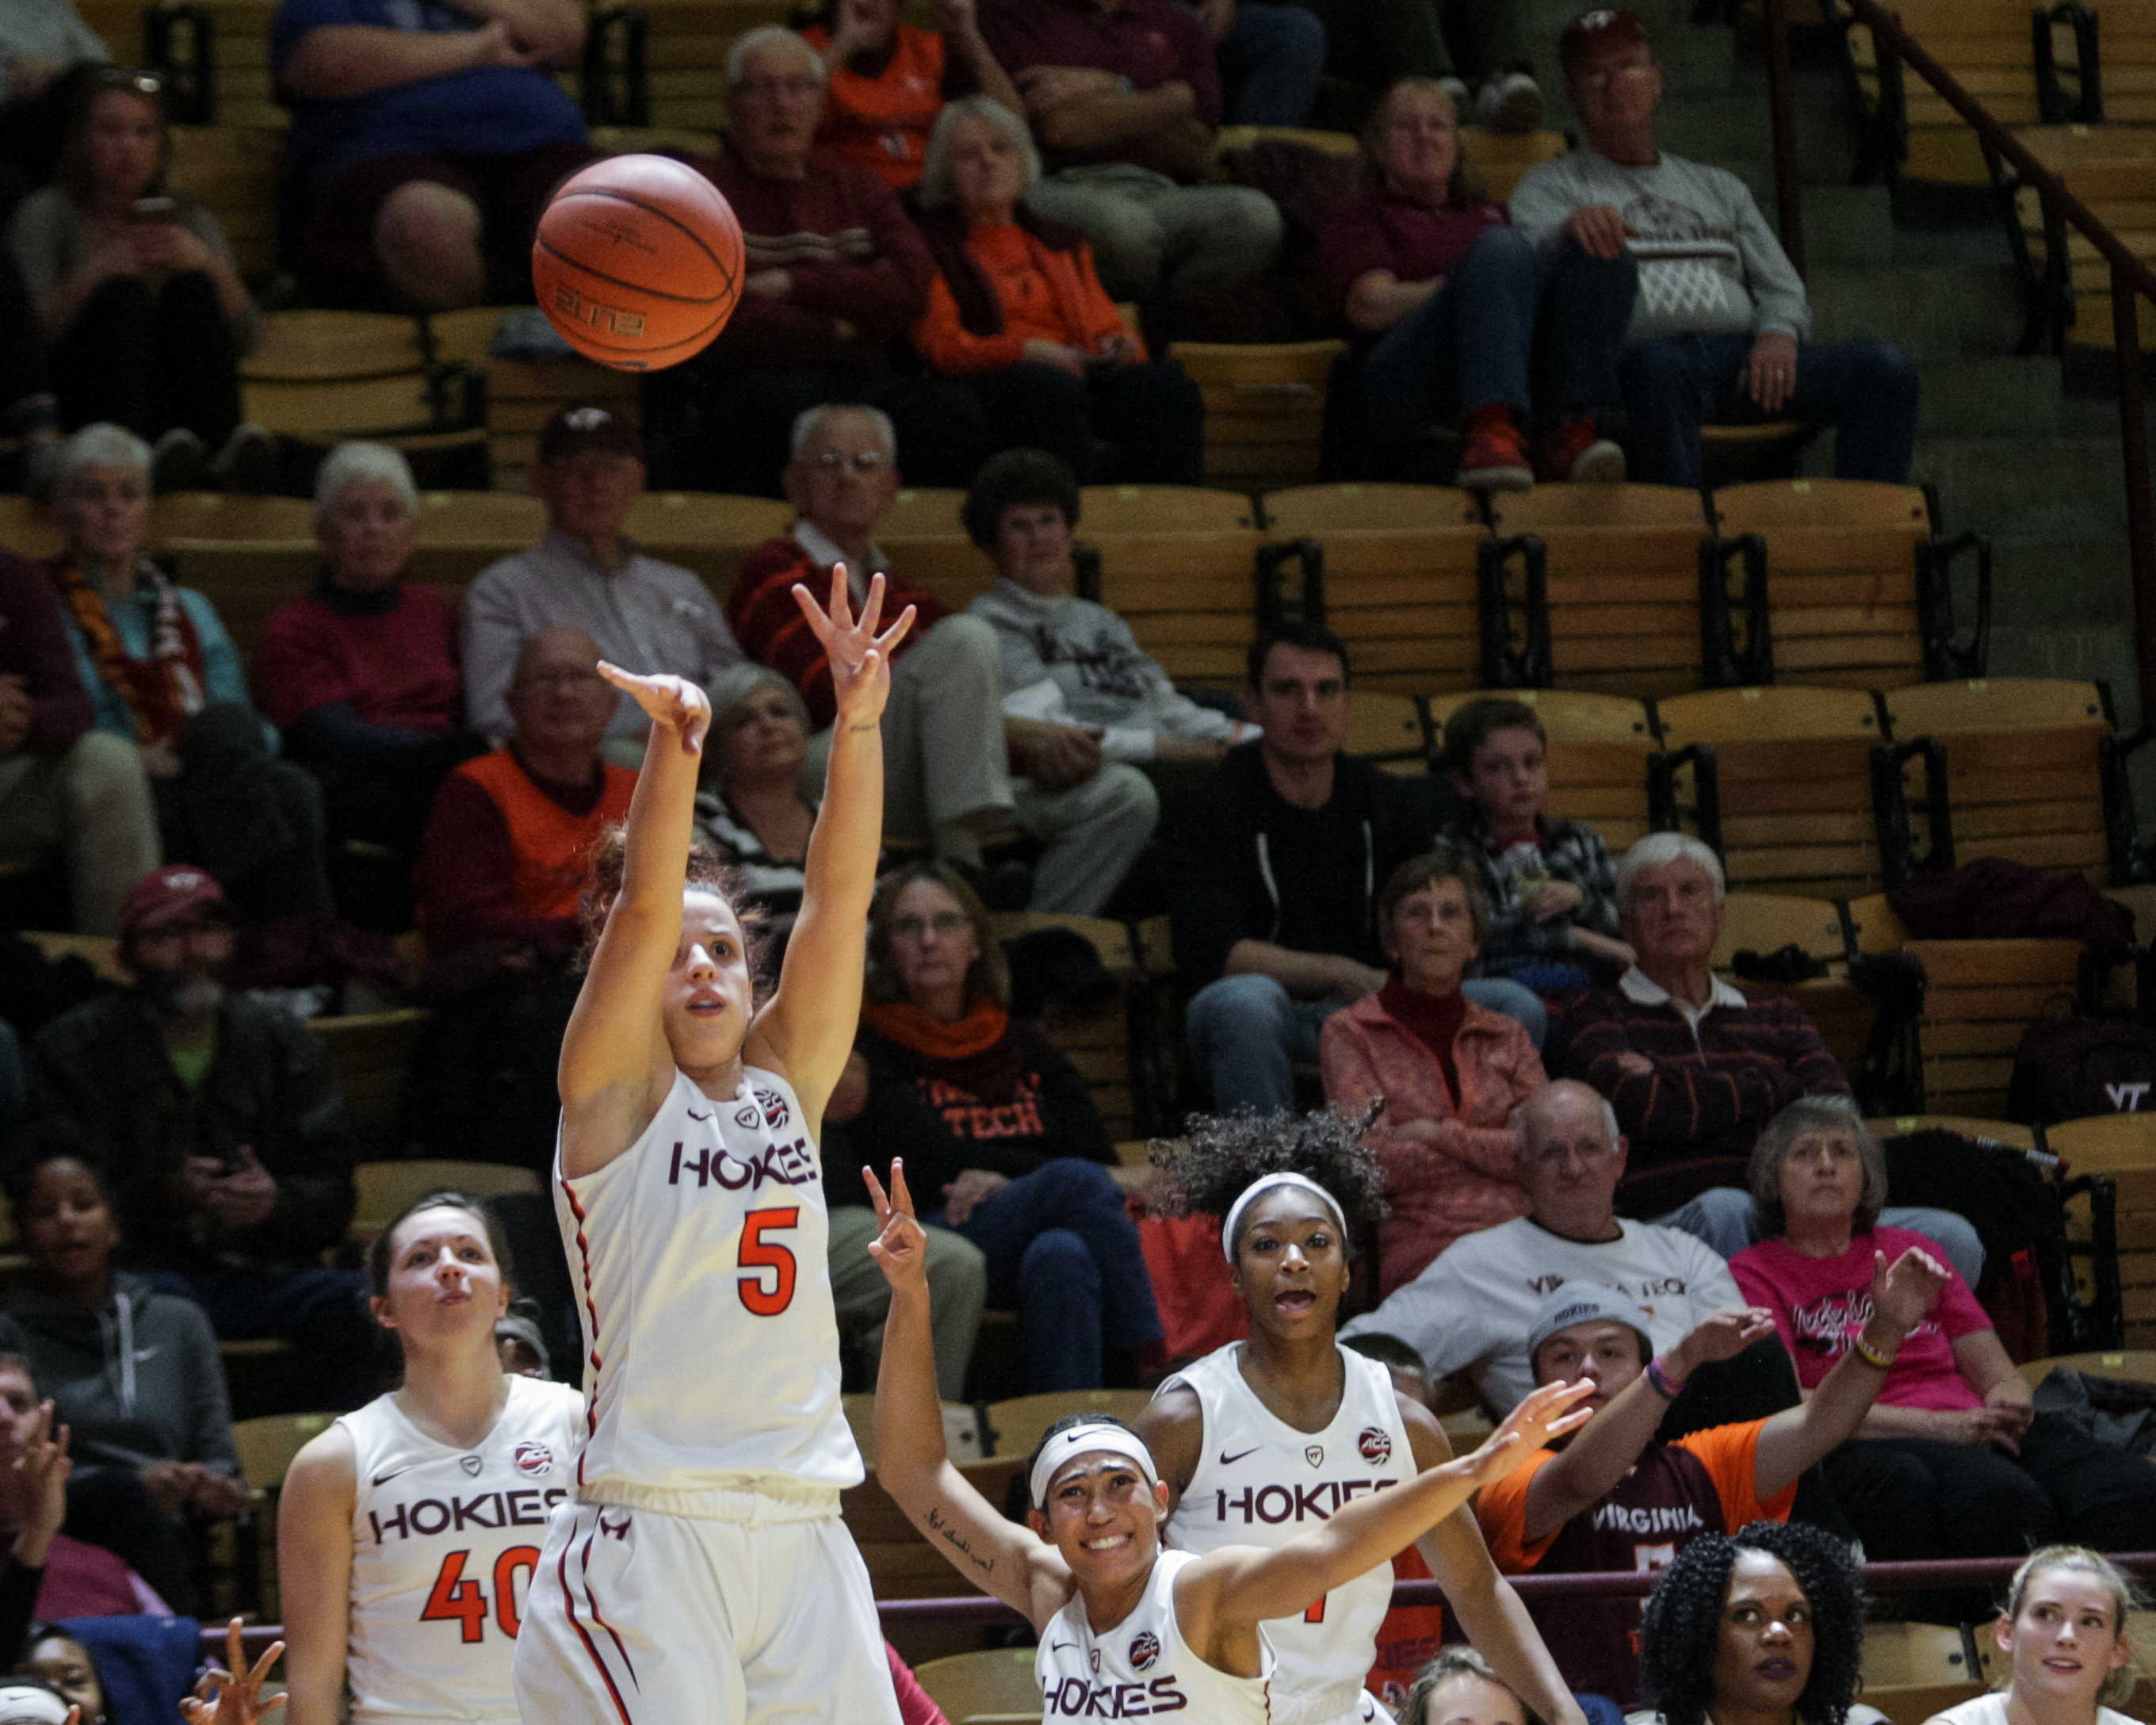 Vanessa Panousis (5) attempts a three pointer against Presbyterian Tuesday night in Cassell Coliseum Nov. 16, 2016. She broke the Hokie career record for three pointers during the game.